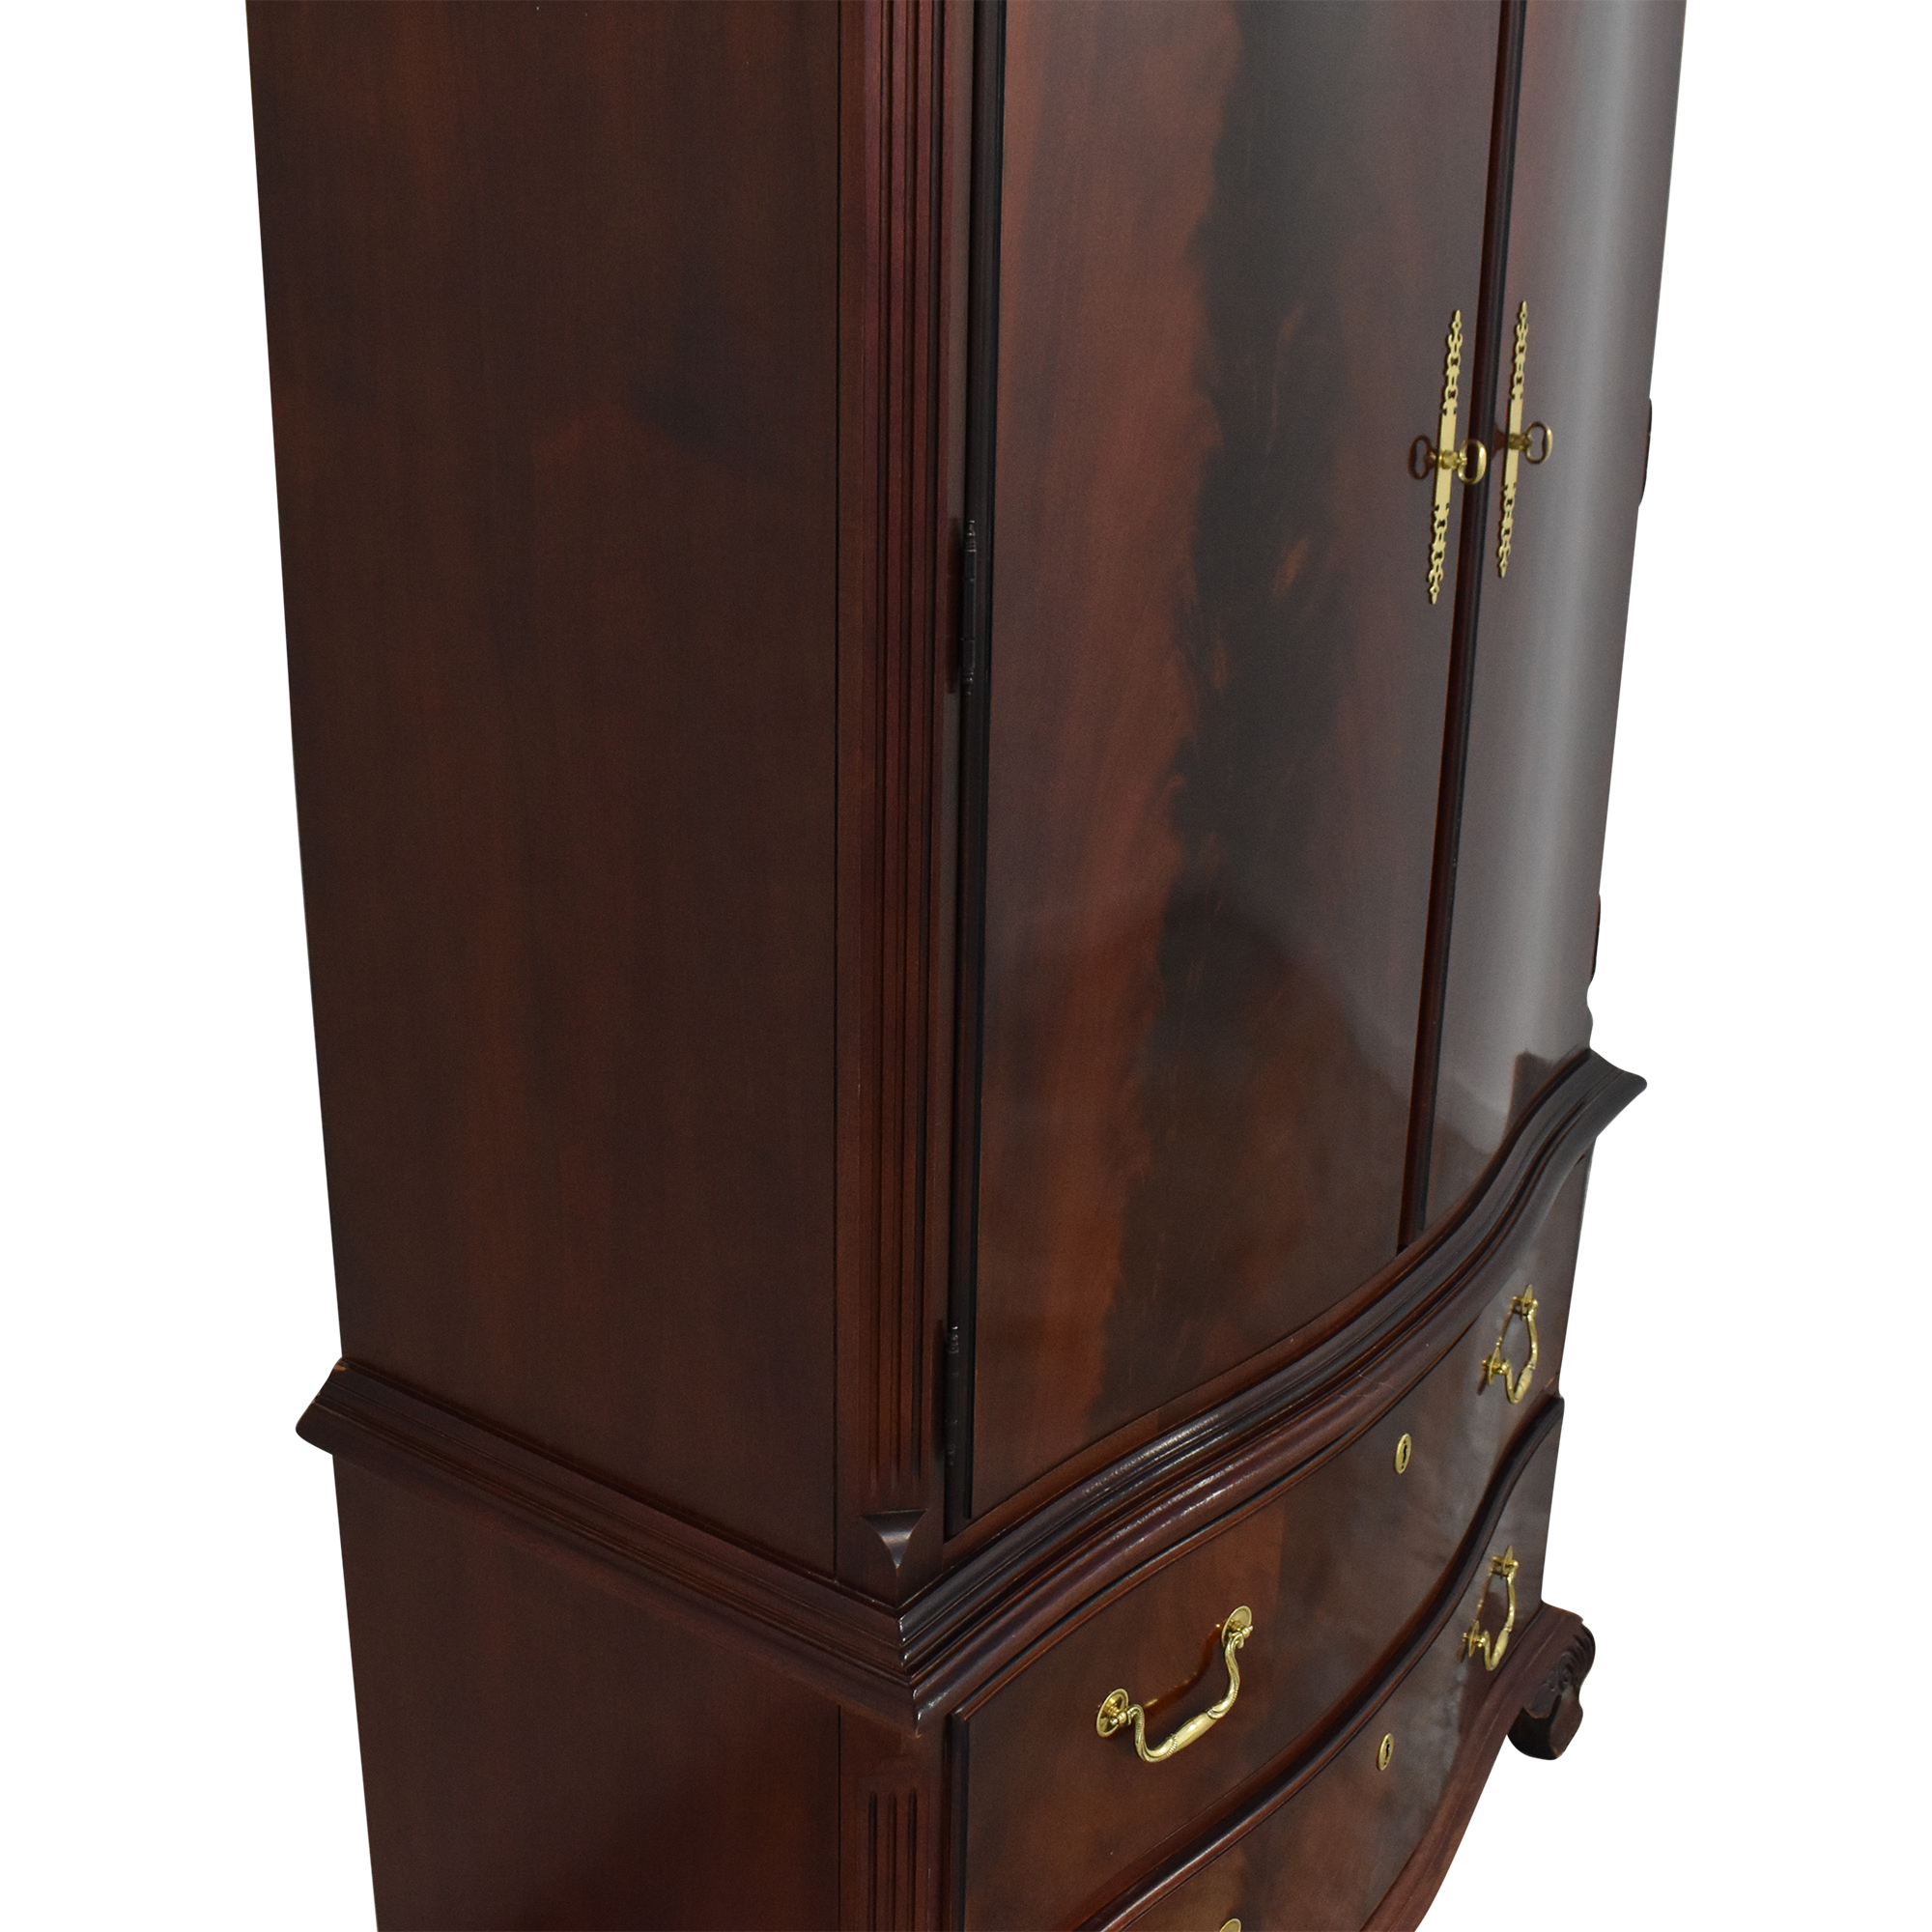 Thomasville Thomasville Vintage Armoire with Drawers ma